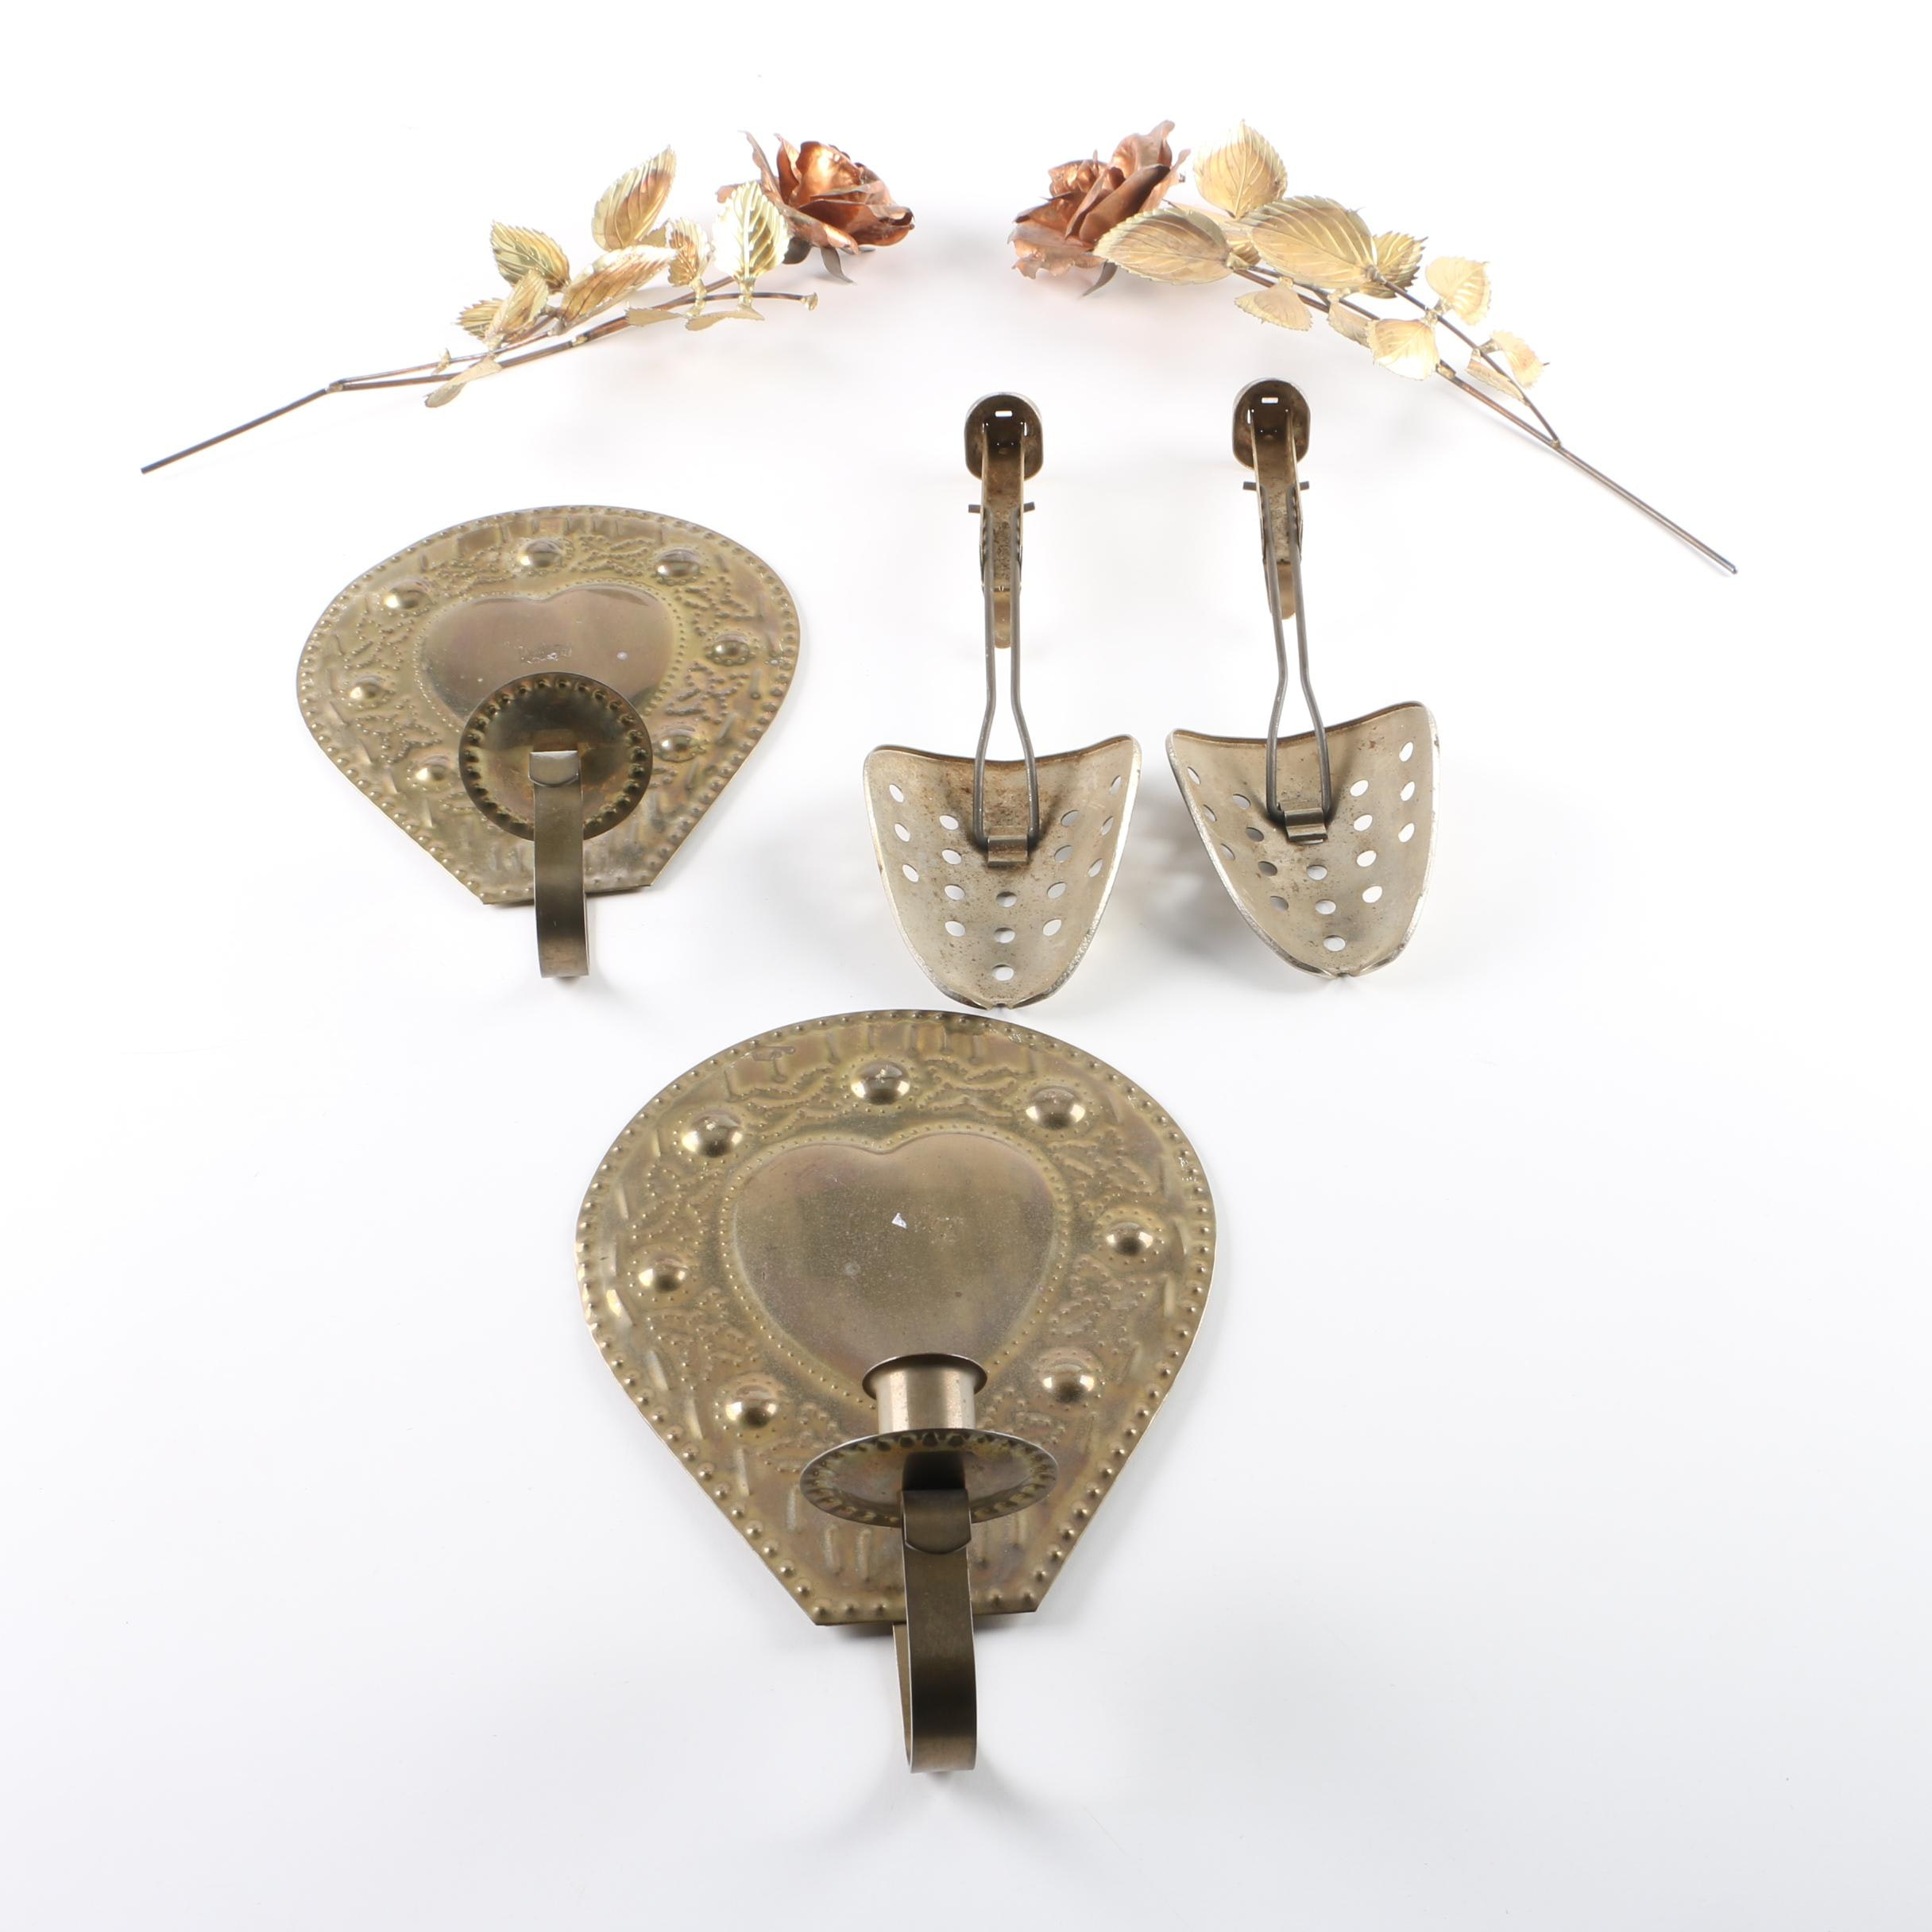 Wall Mount Style Metal Candle Holders and Floral Wall Hangings